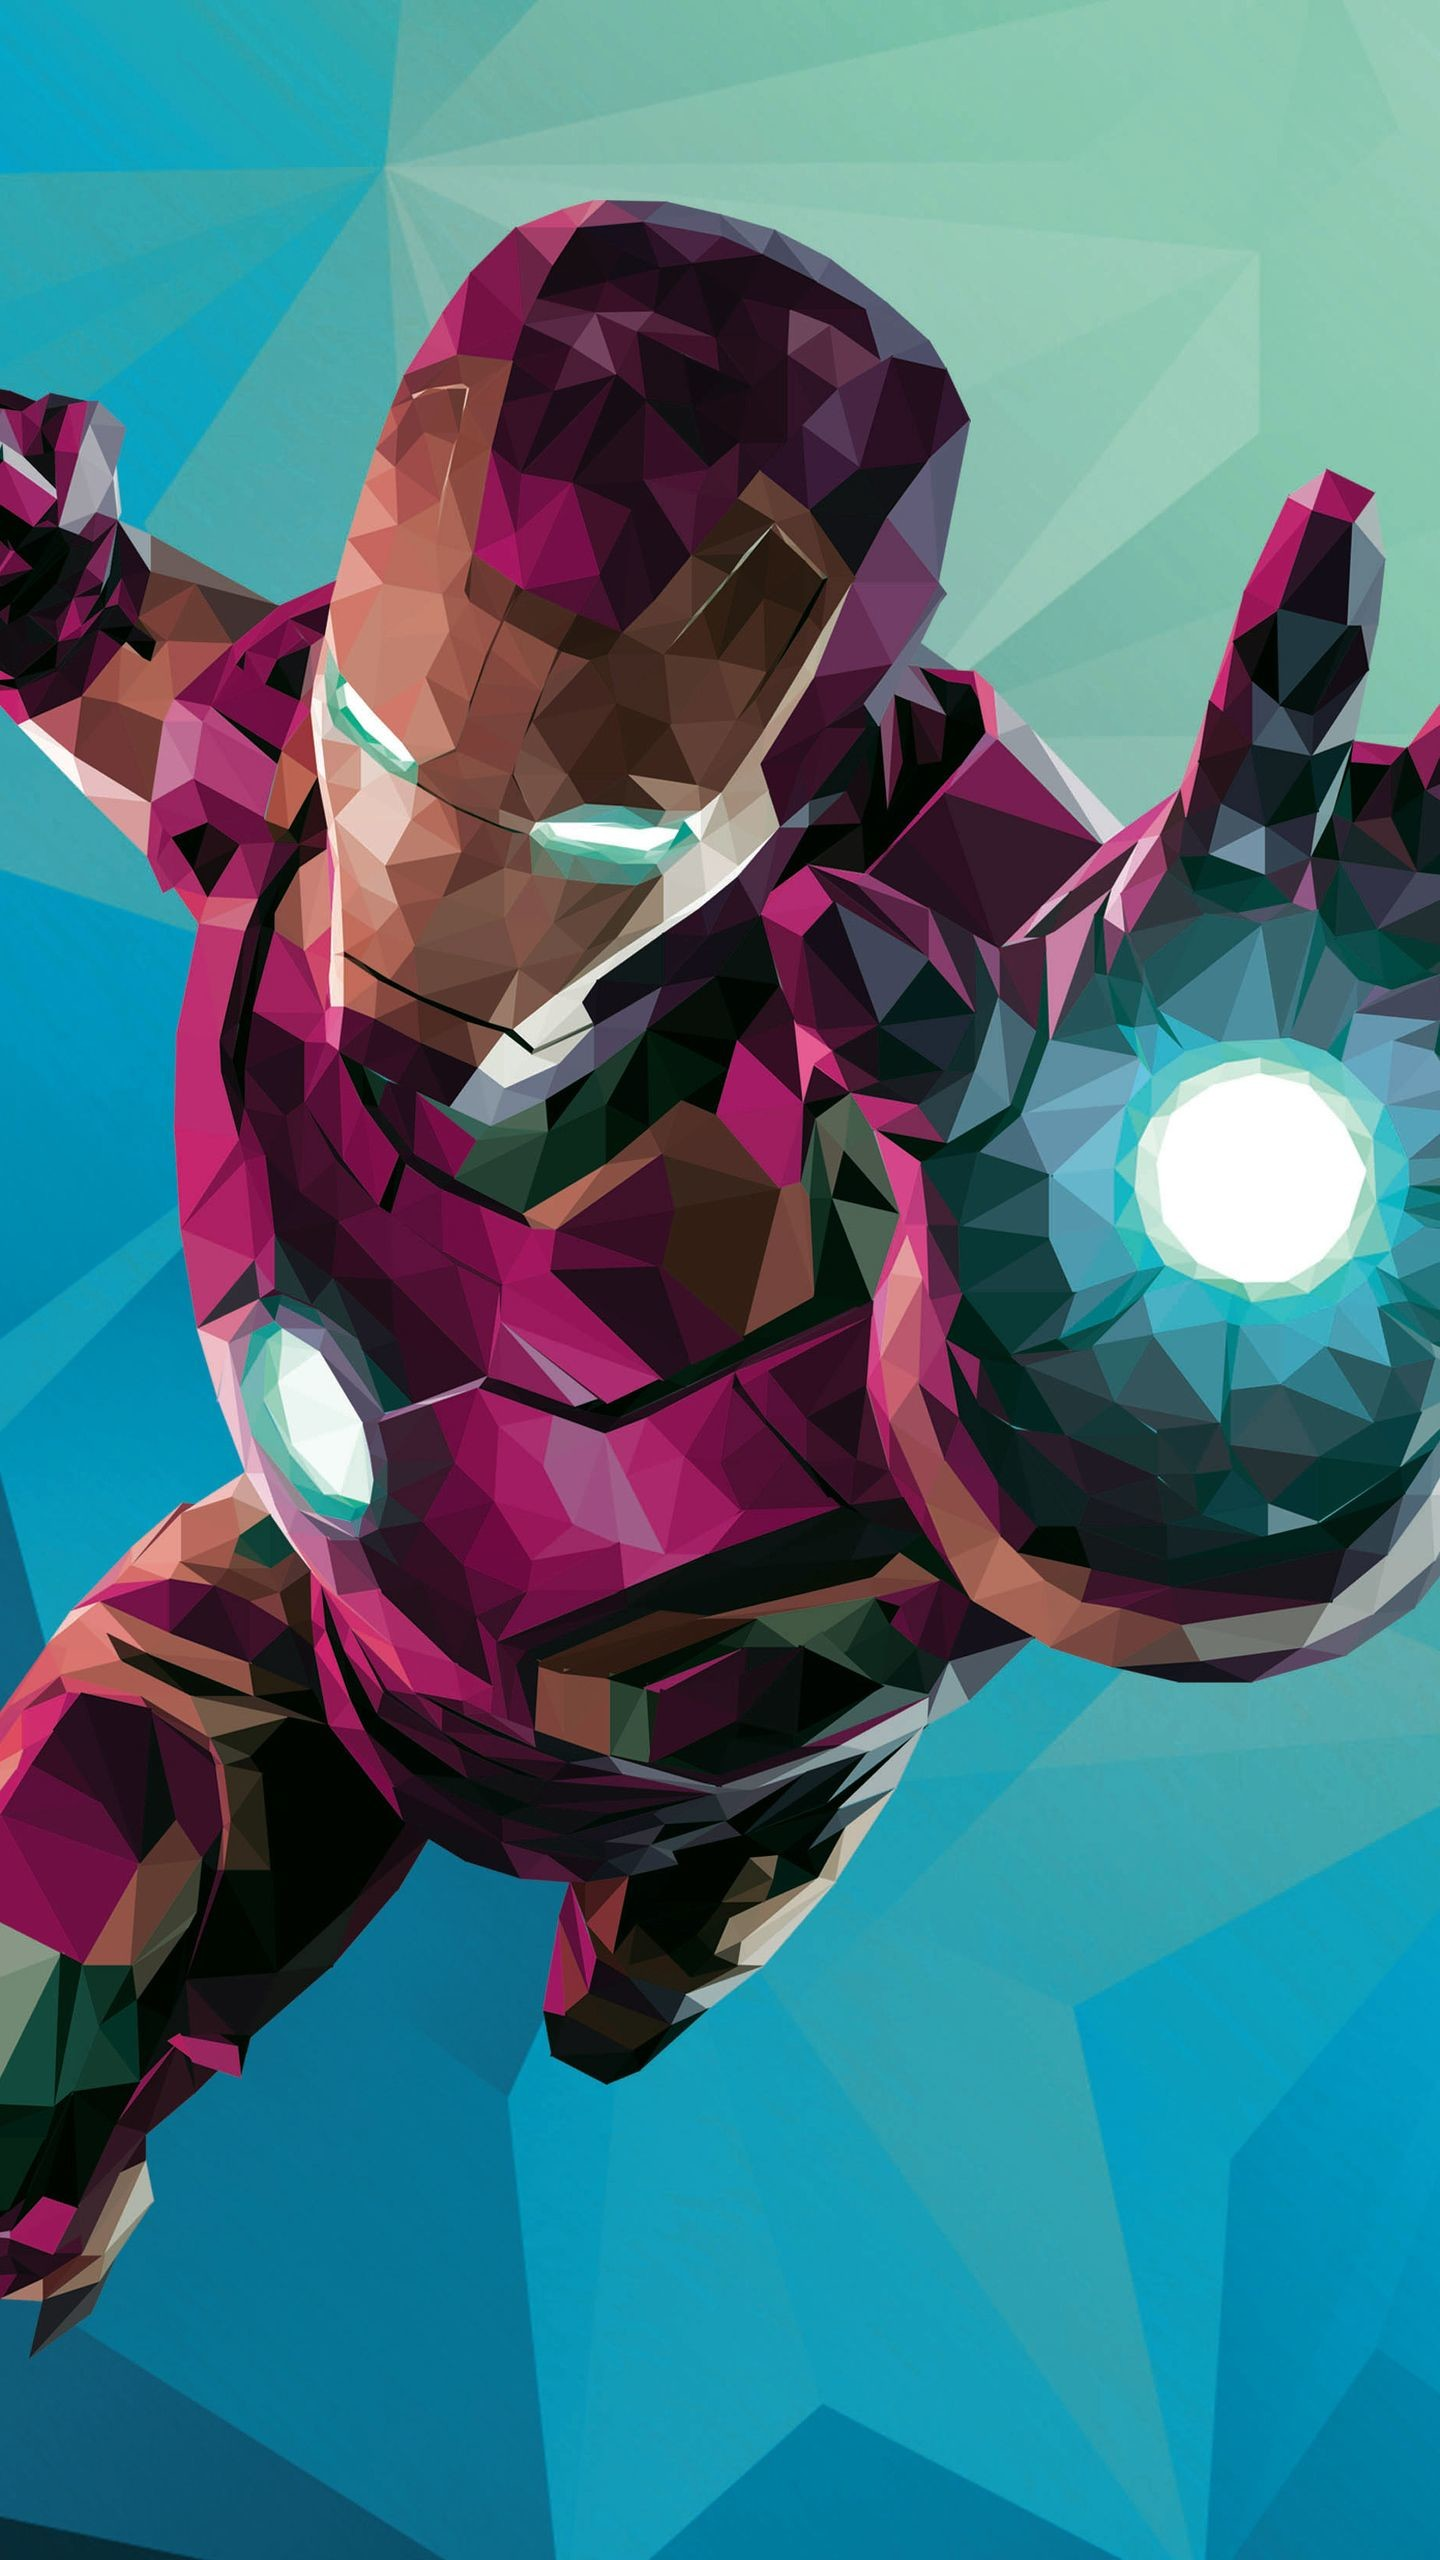 Tony Stark Wallpaper (67+ images)